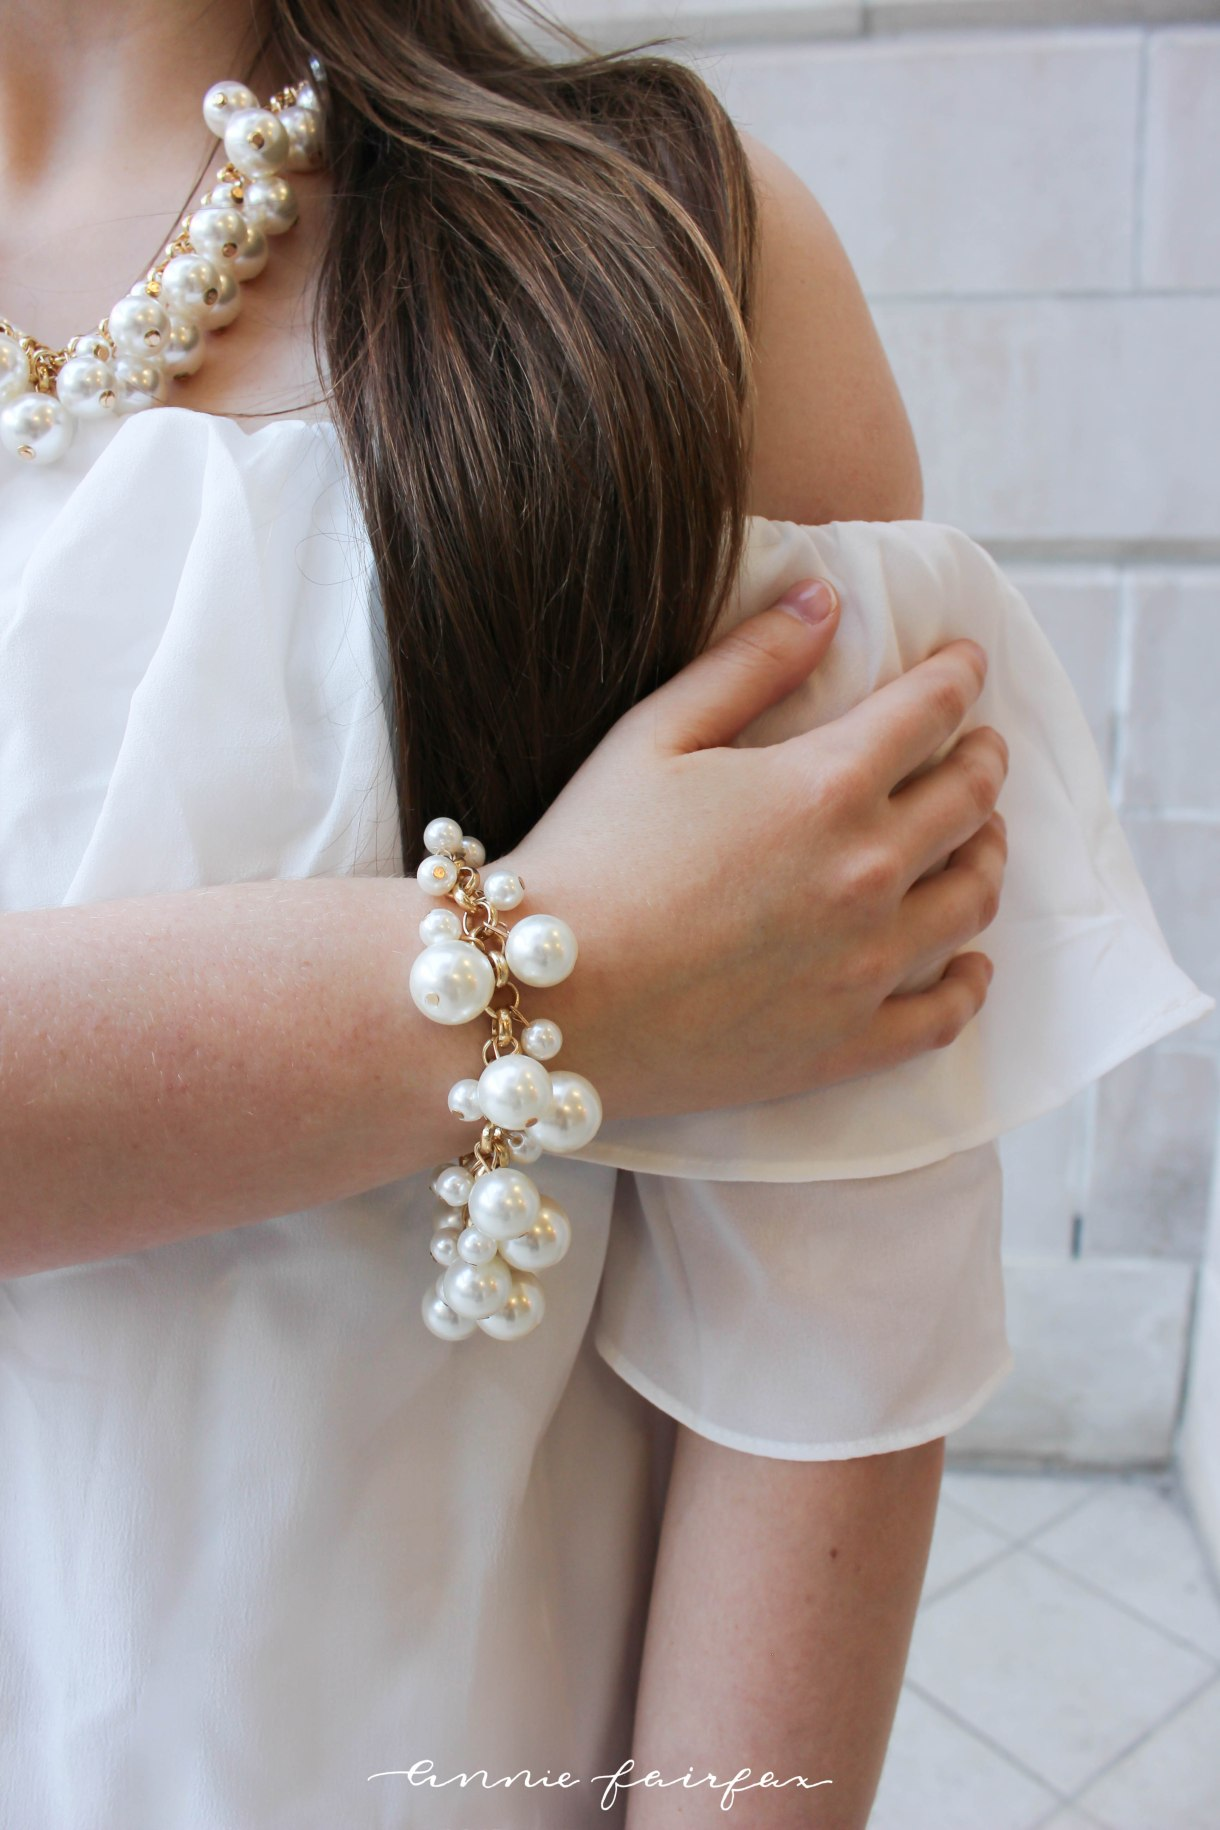 White off the shoulder dress with pearl necklace bracelet blush coach handbag purse date night formal spring summer look airy light